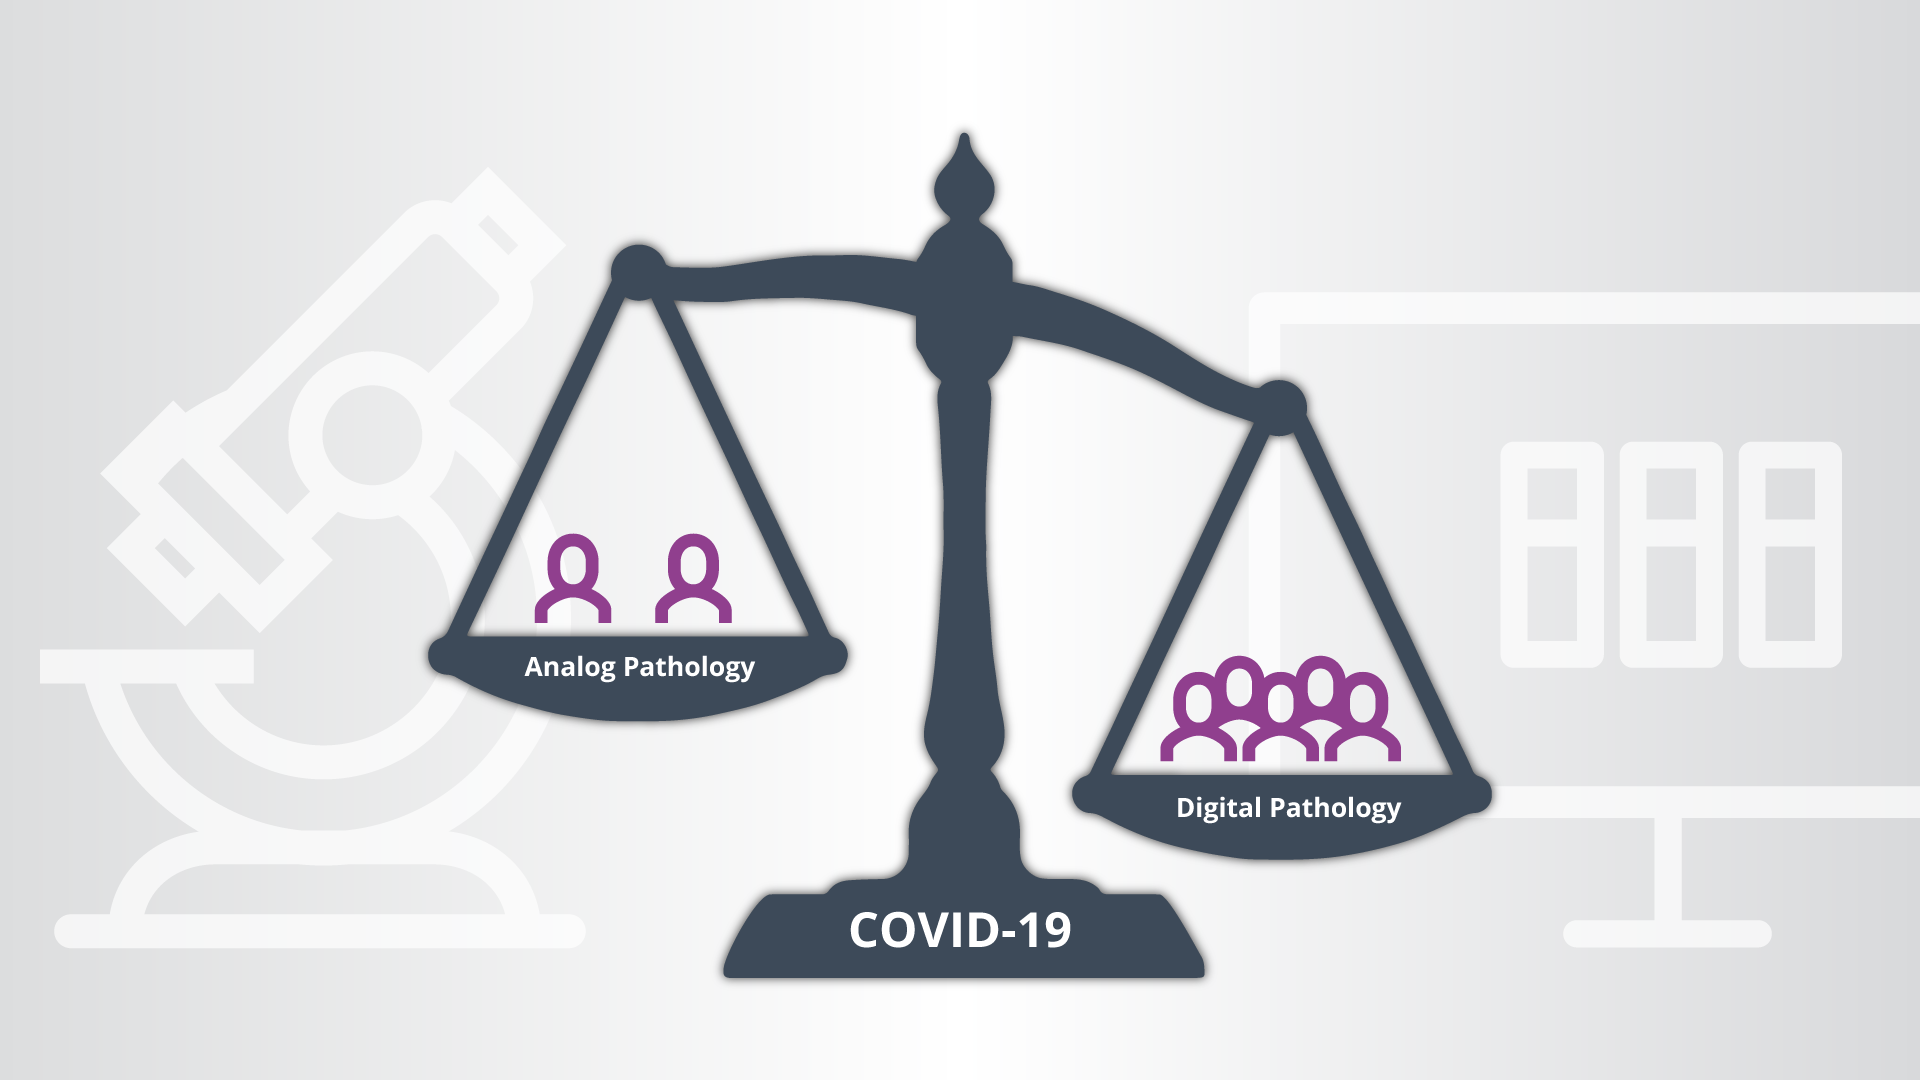 All-Time High Support of Digital Pathology Driven by COVID-19